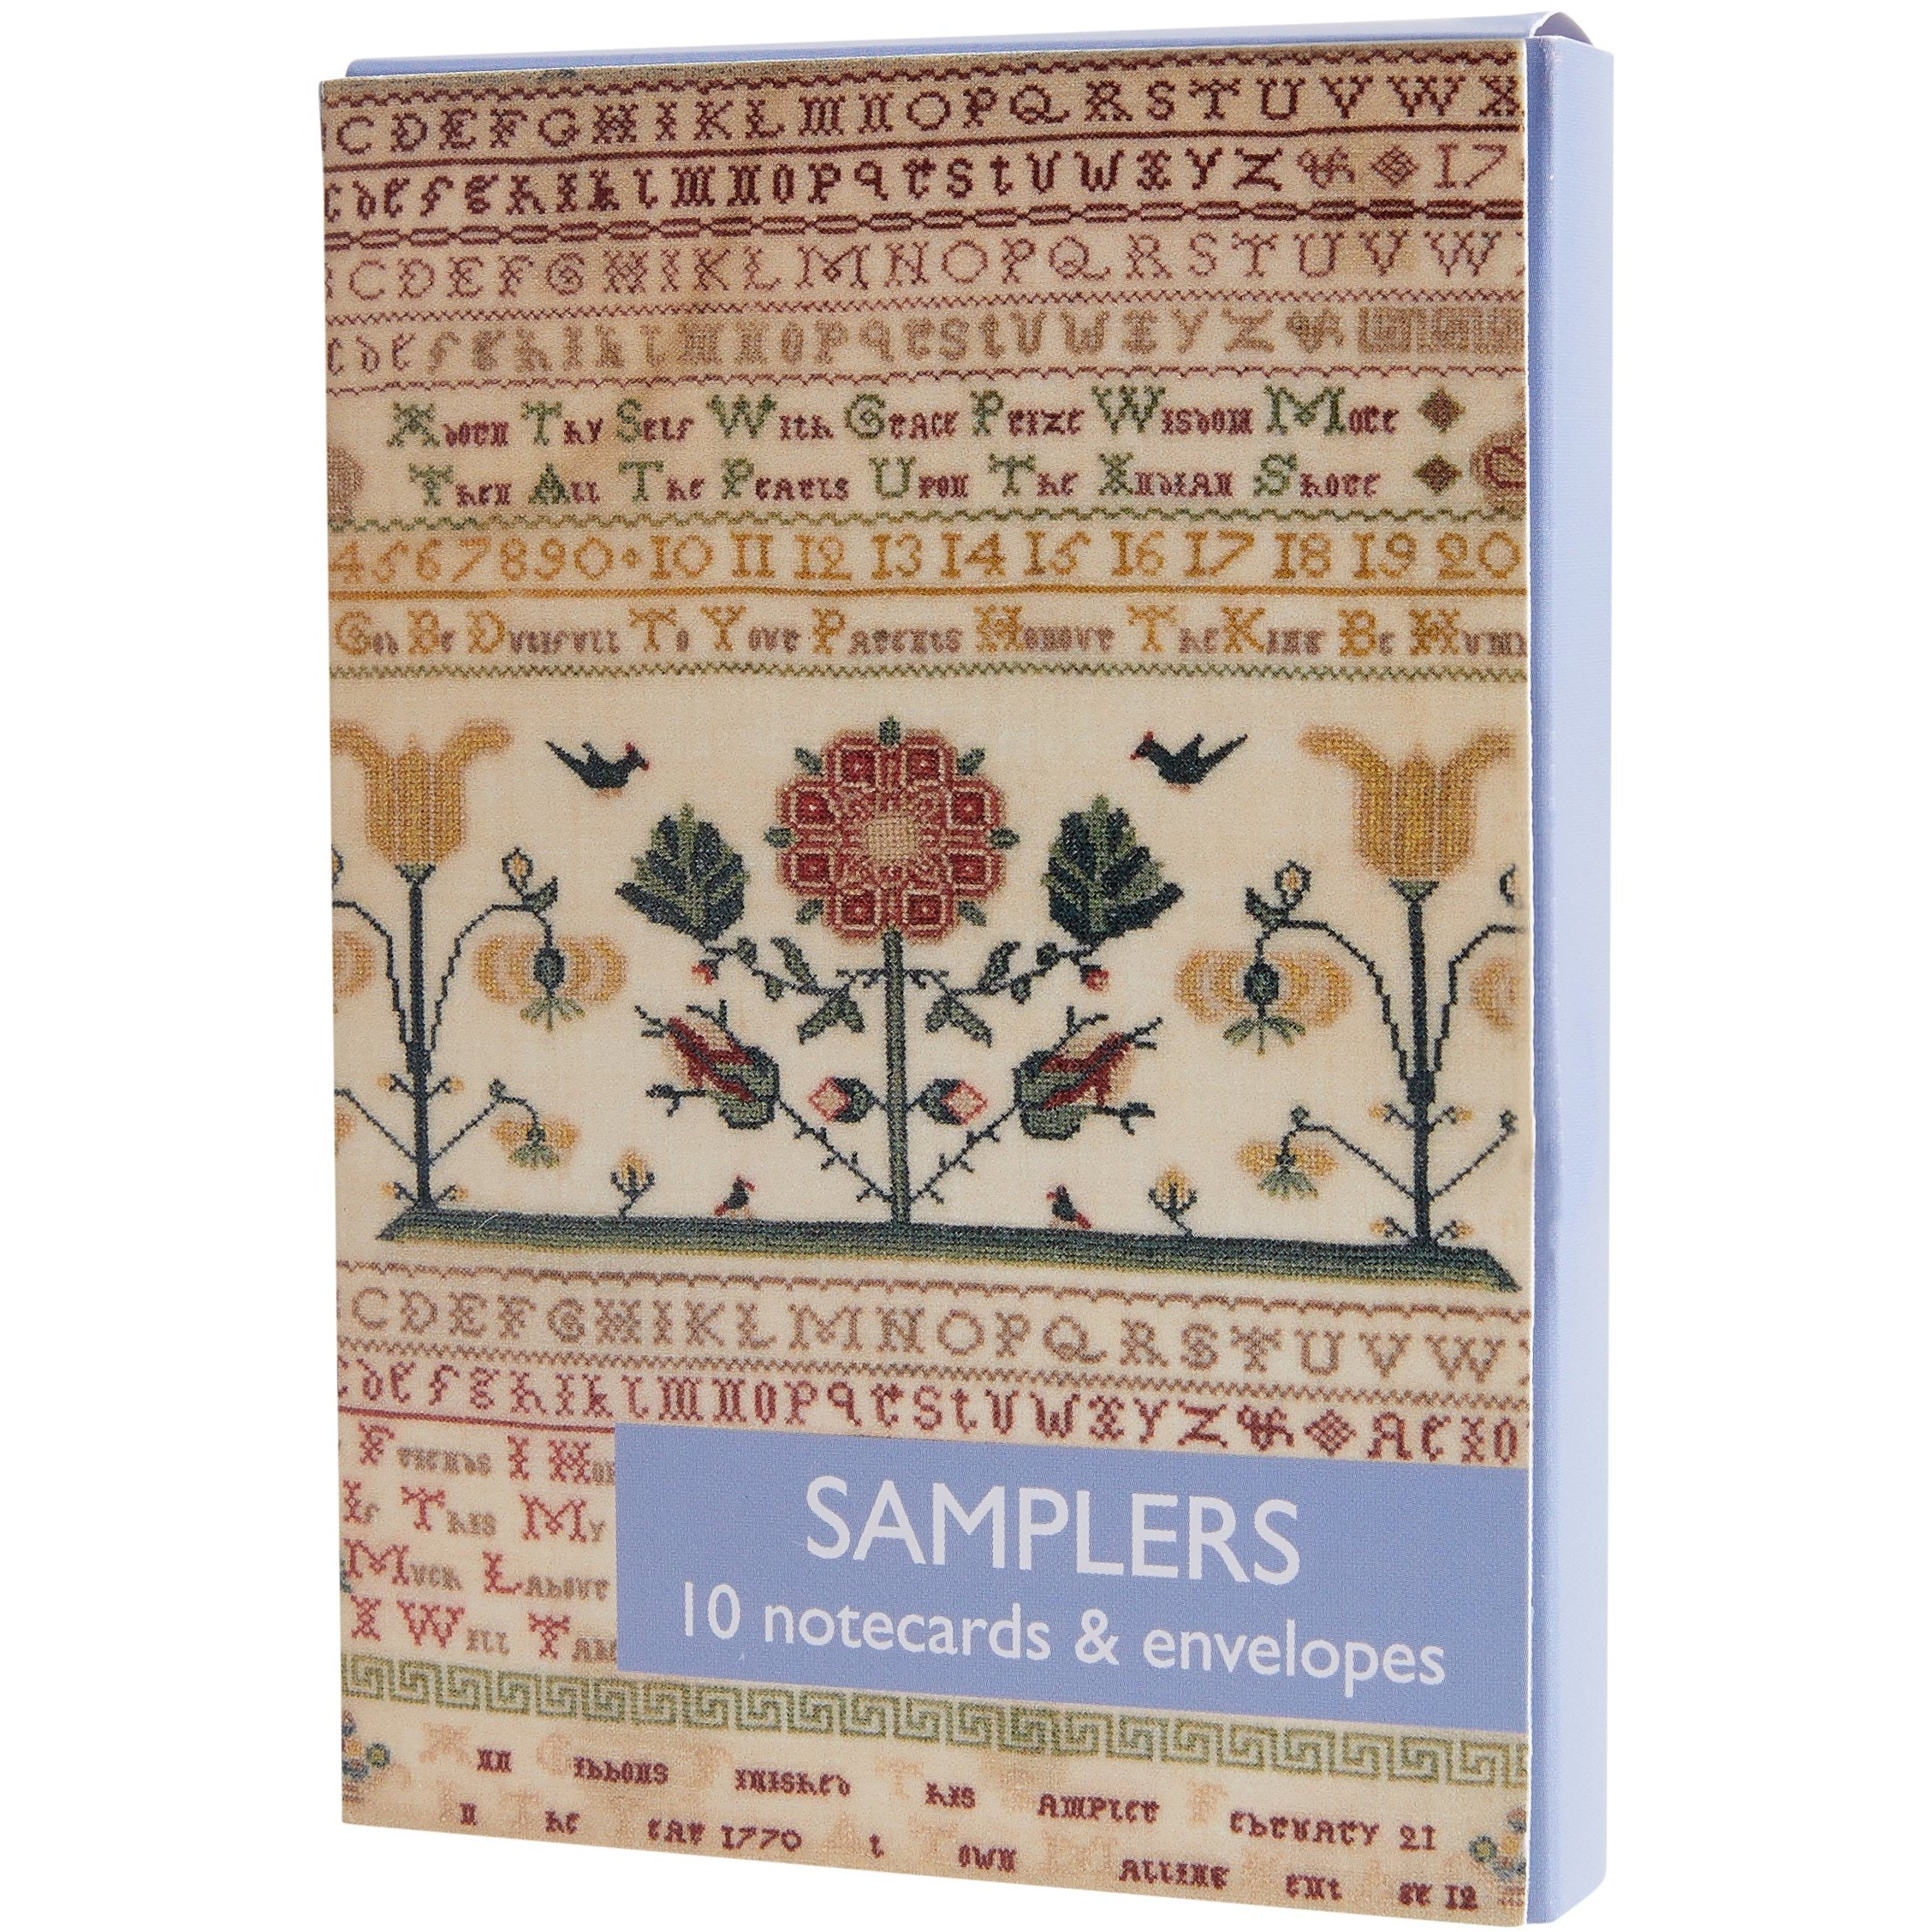 Featured image for the project: Samplers  - Notecard pack